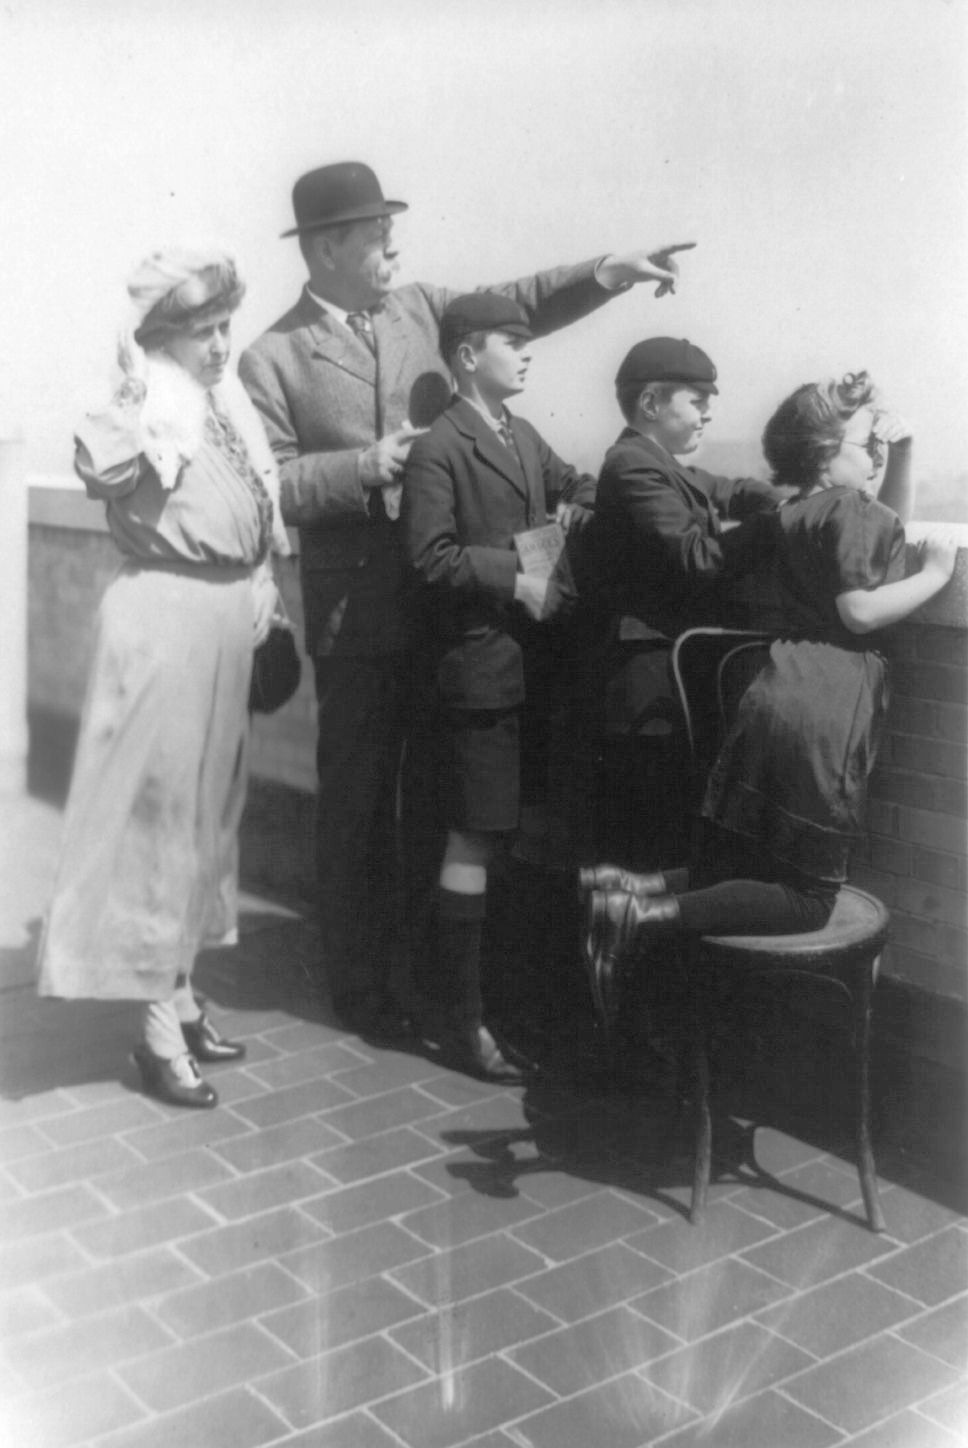 Doyle with his family in New York City, 1922